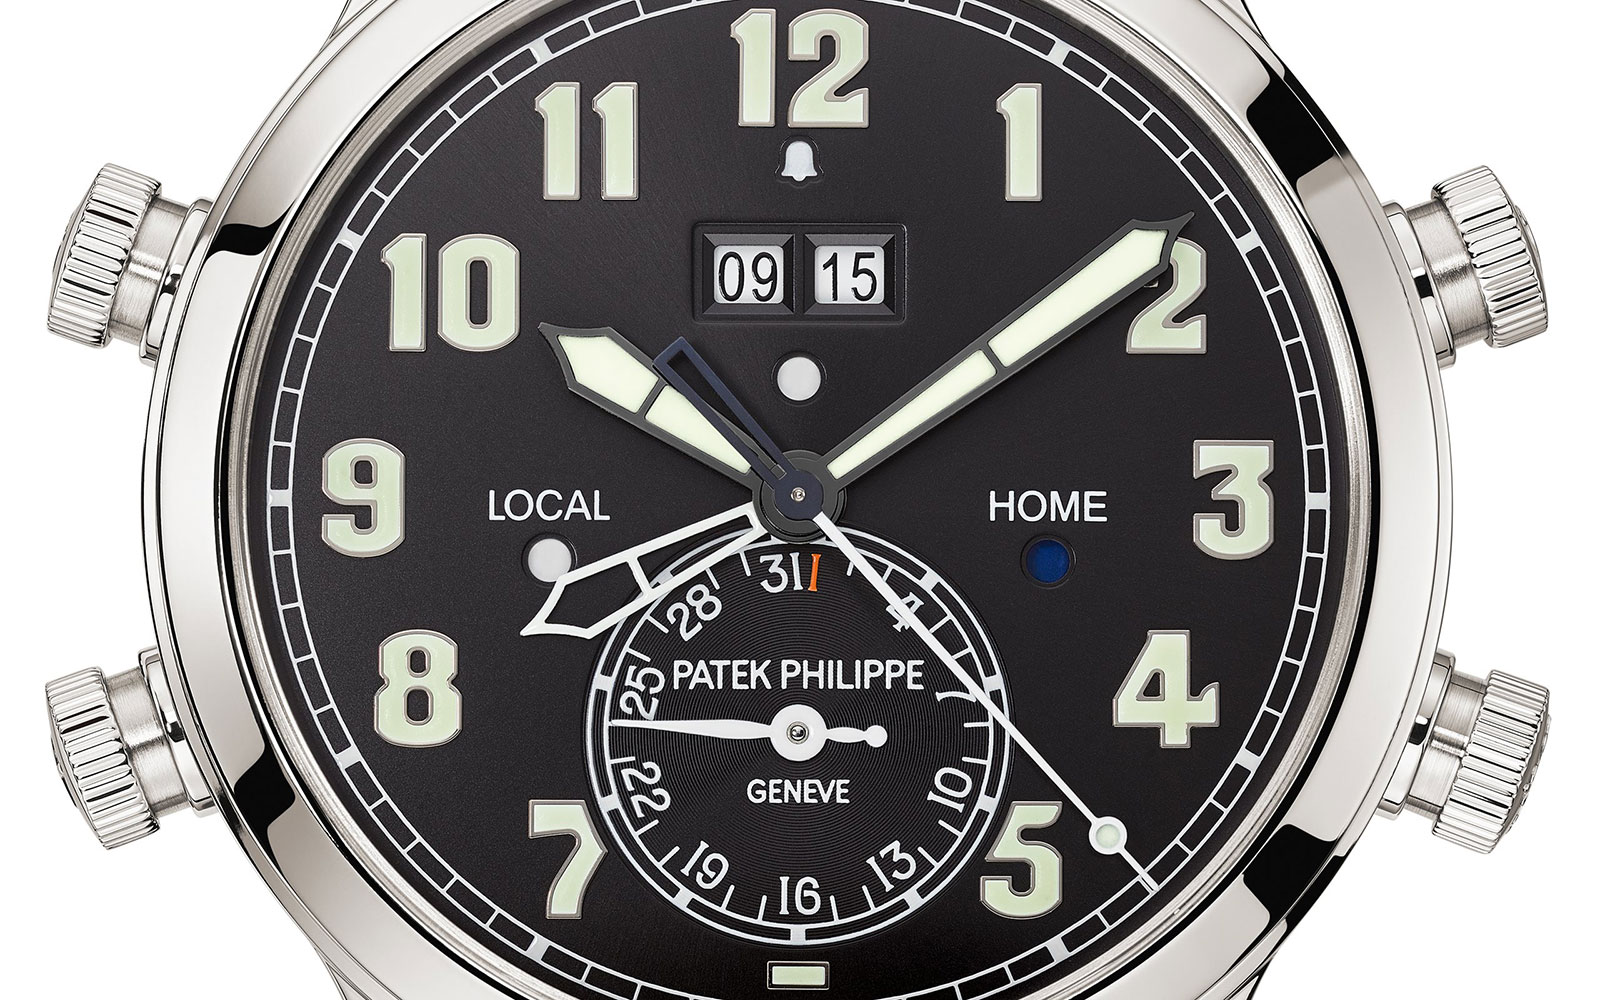 Patek philippe Ref. 5520P Alarm Travel Time 8